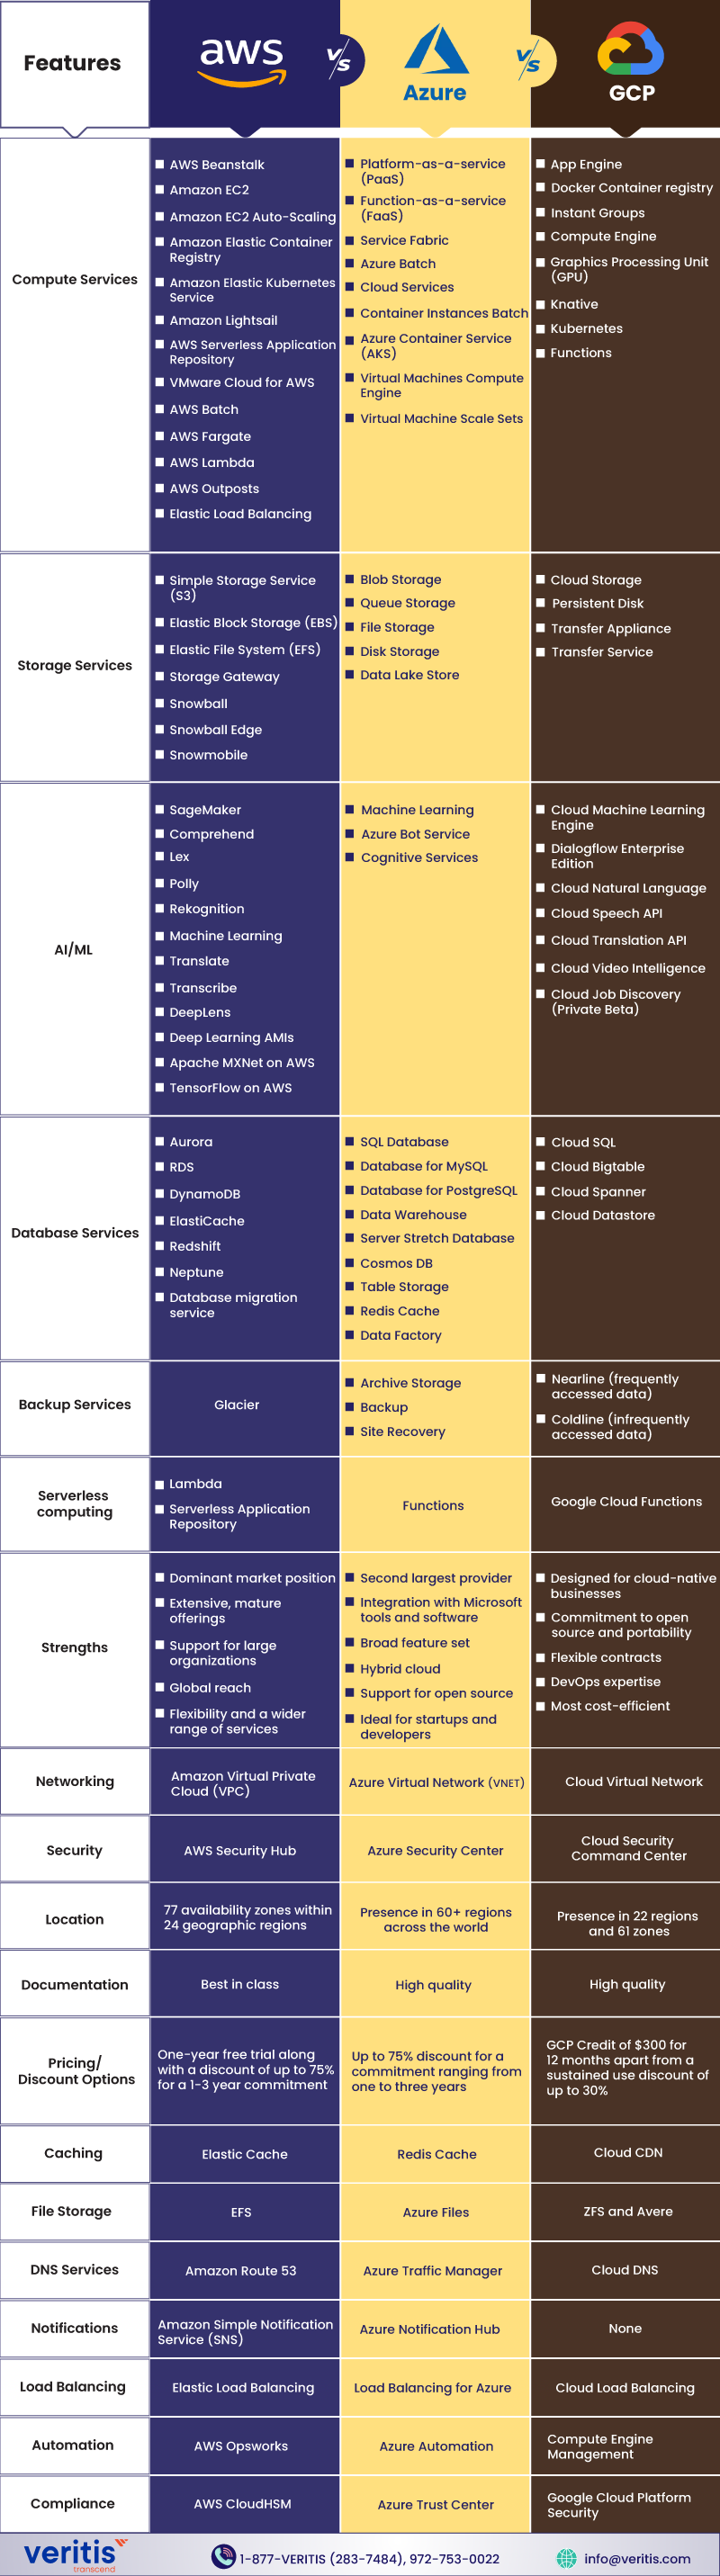 Infographic: AWS vs Azure vs Google - Cloud Platforms Comparison